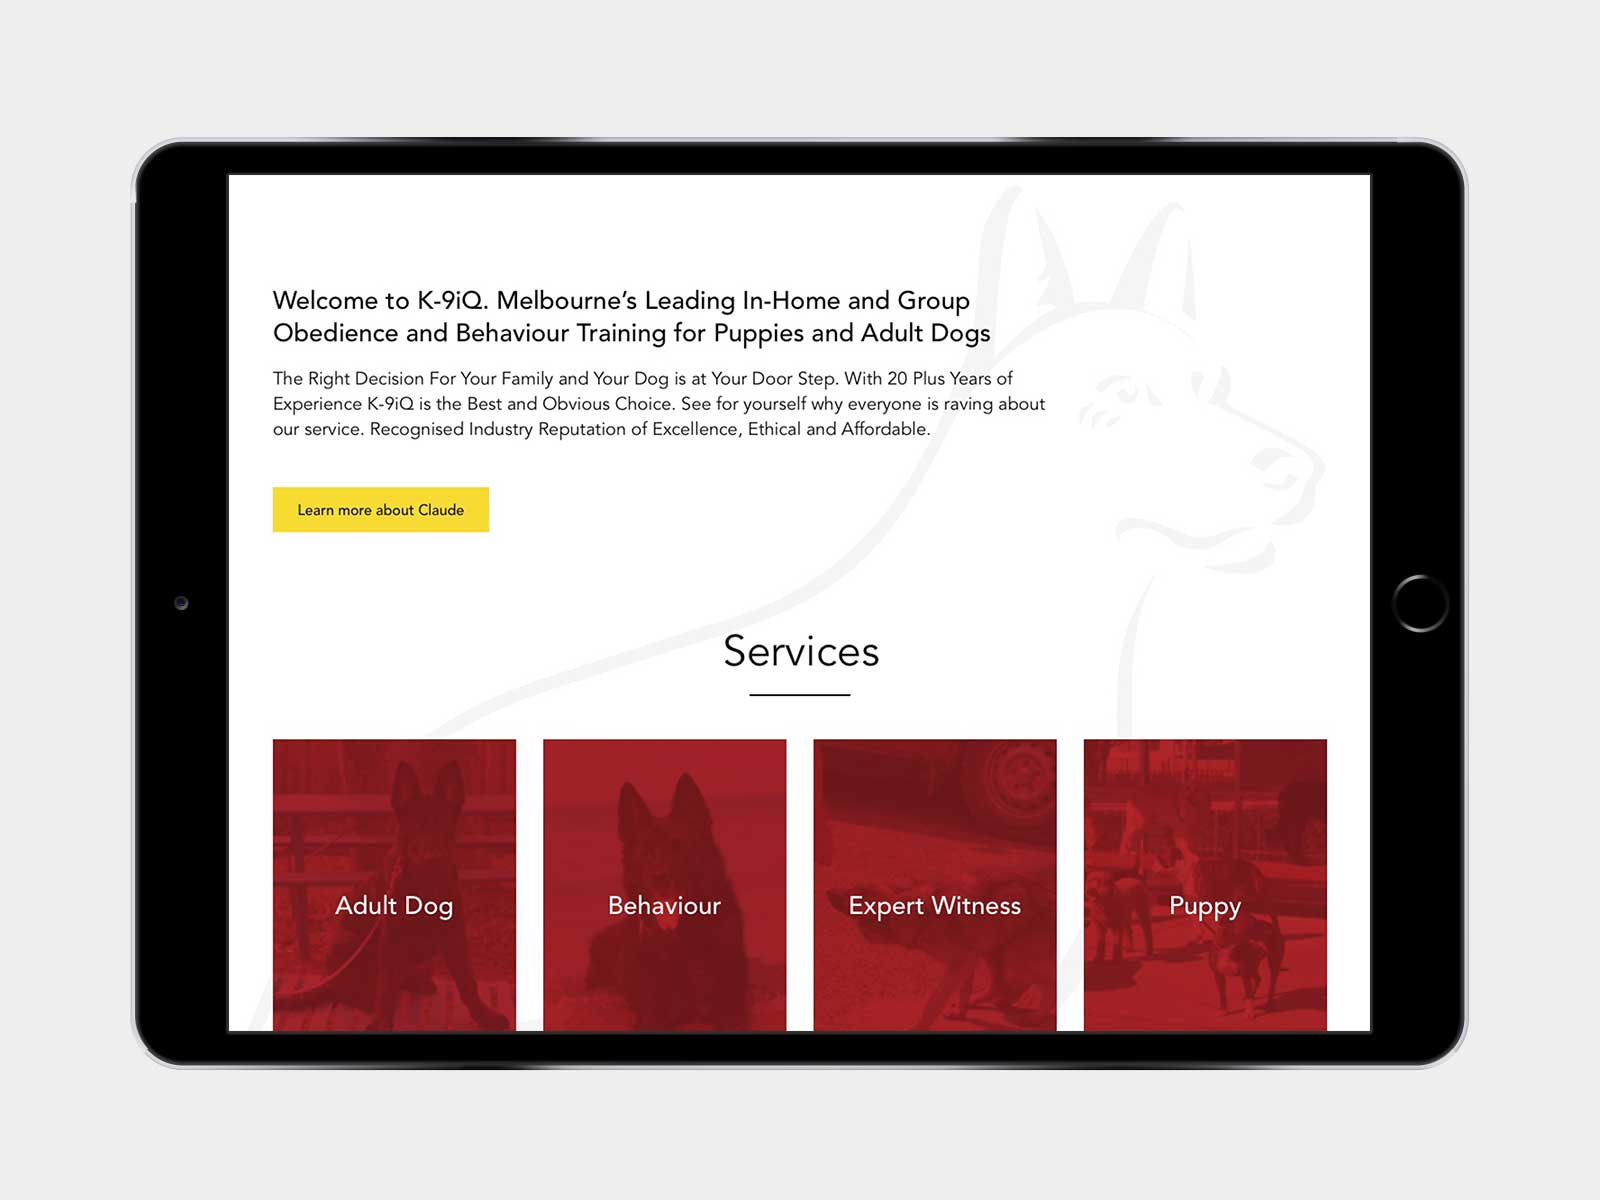 K9IQ responsive website for navigation menu on iPad in landscape view